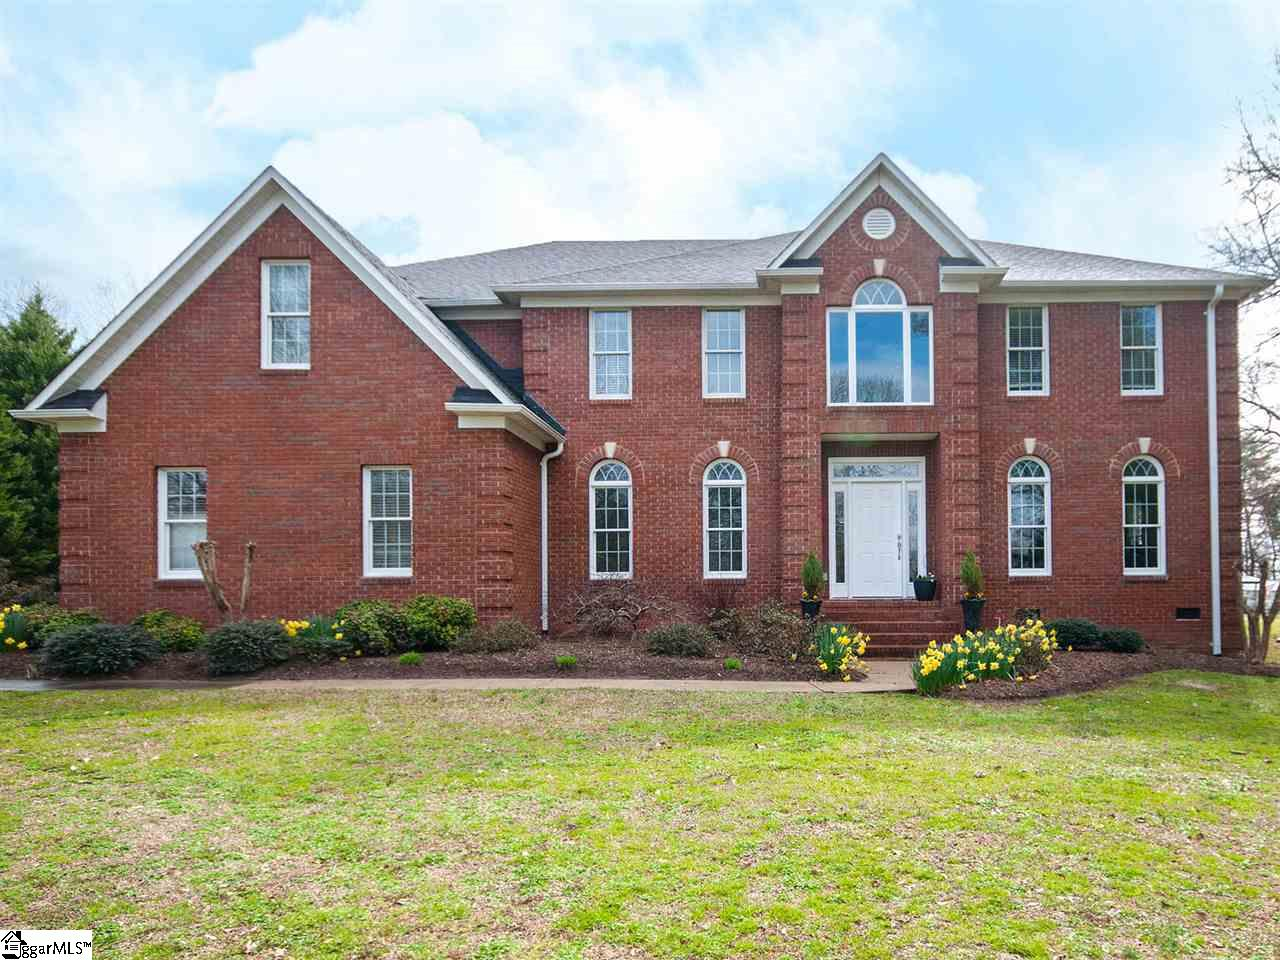 4016/4012 Pennington Road Greer, SC 29651